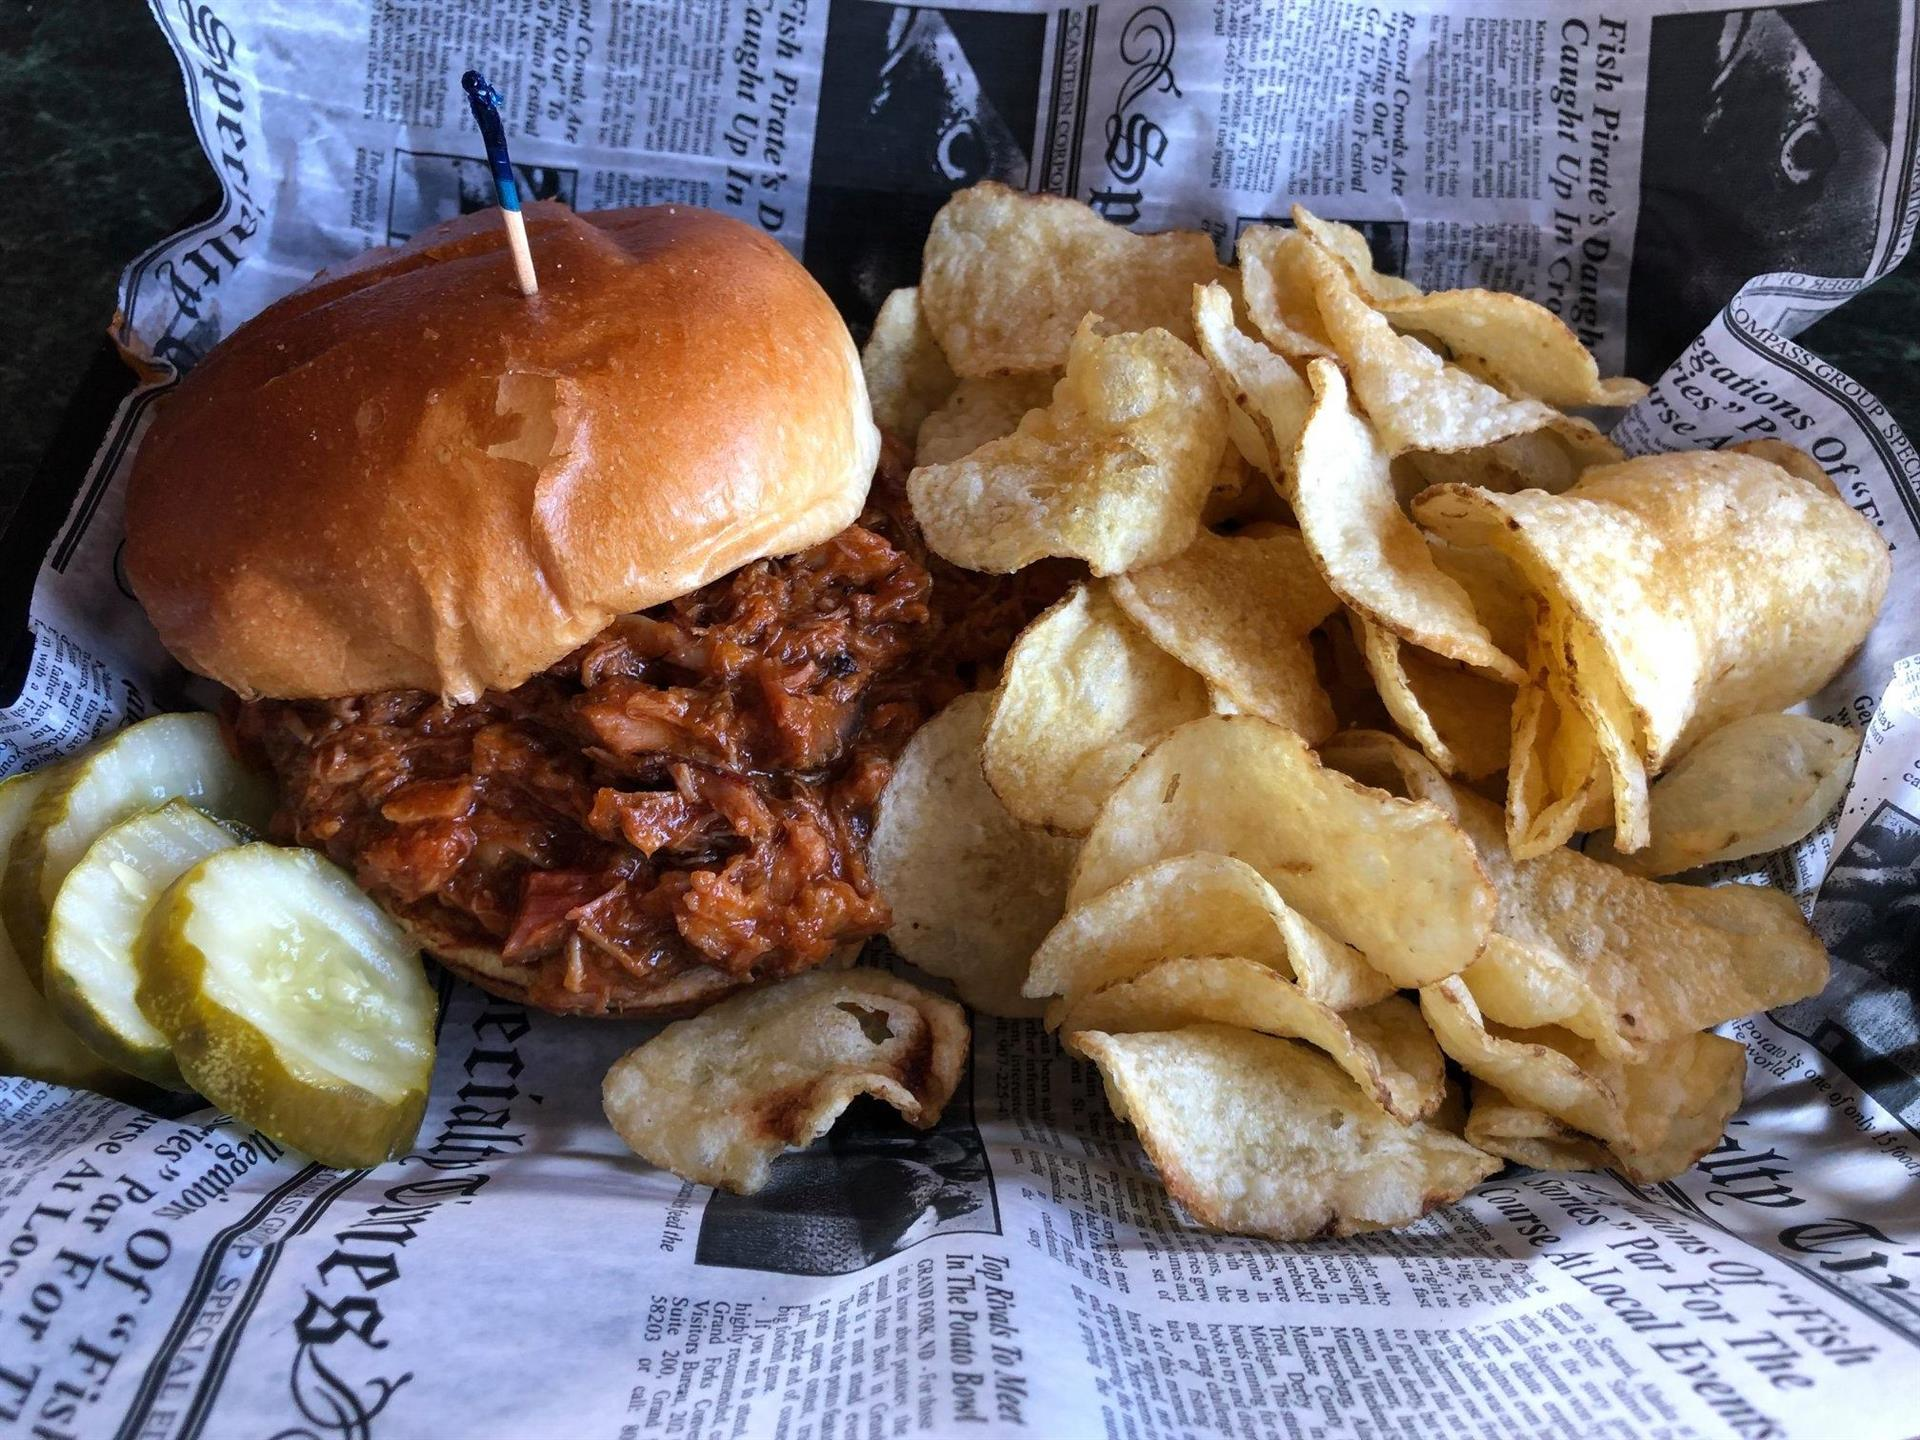 pulled pork sandwich and chips